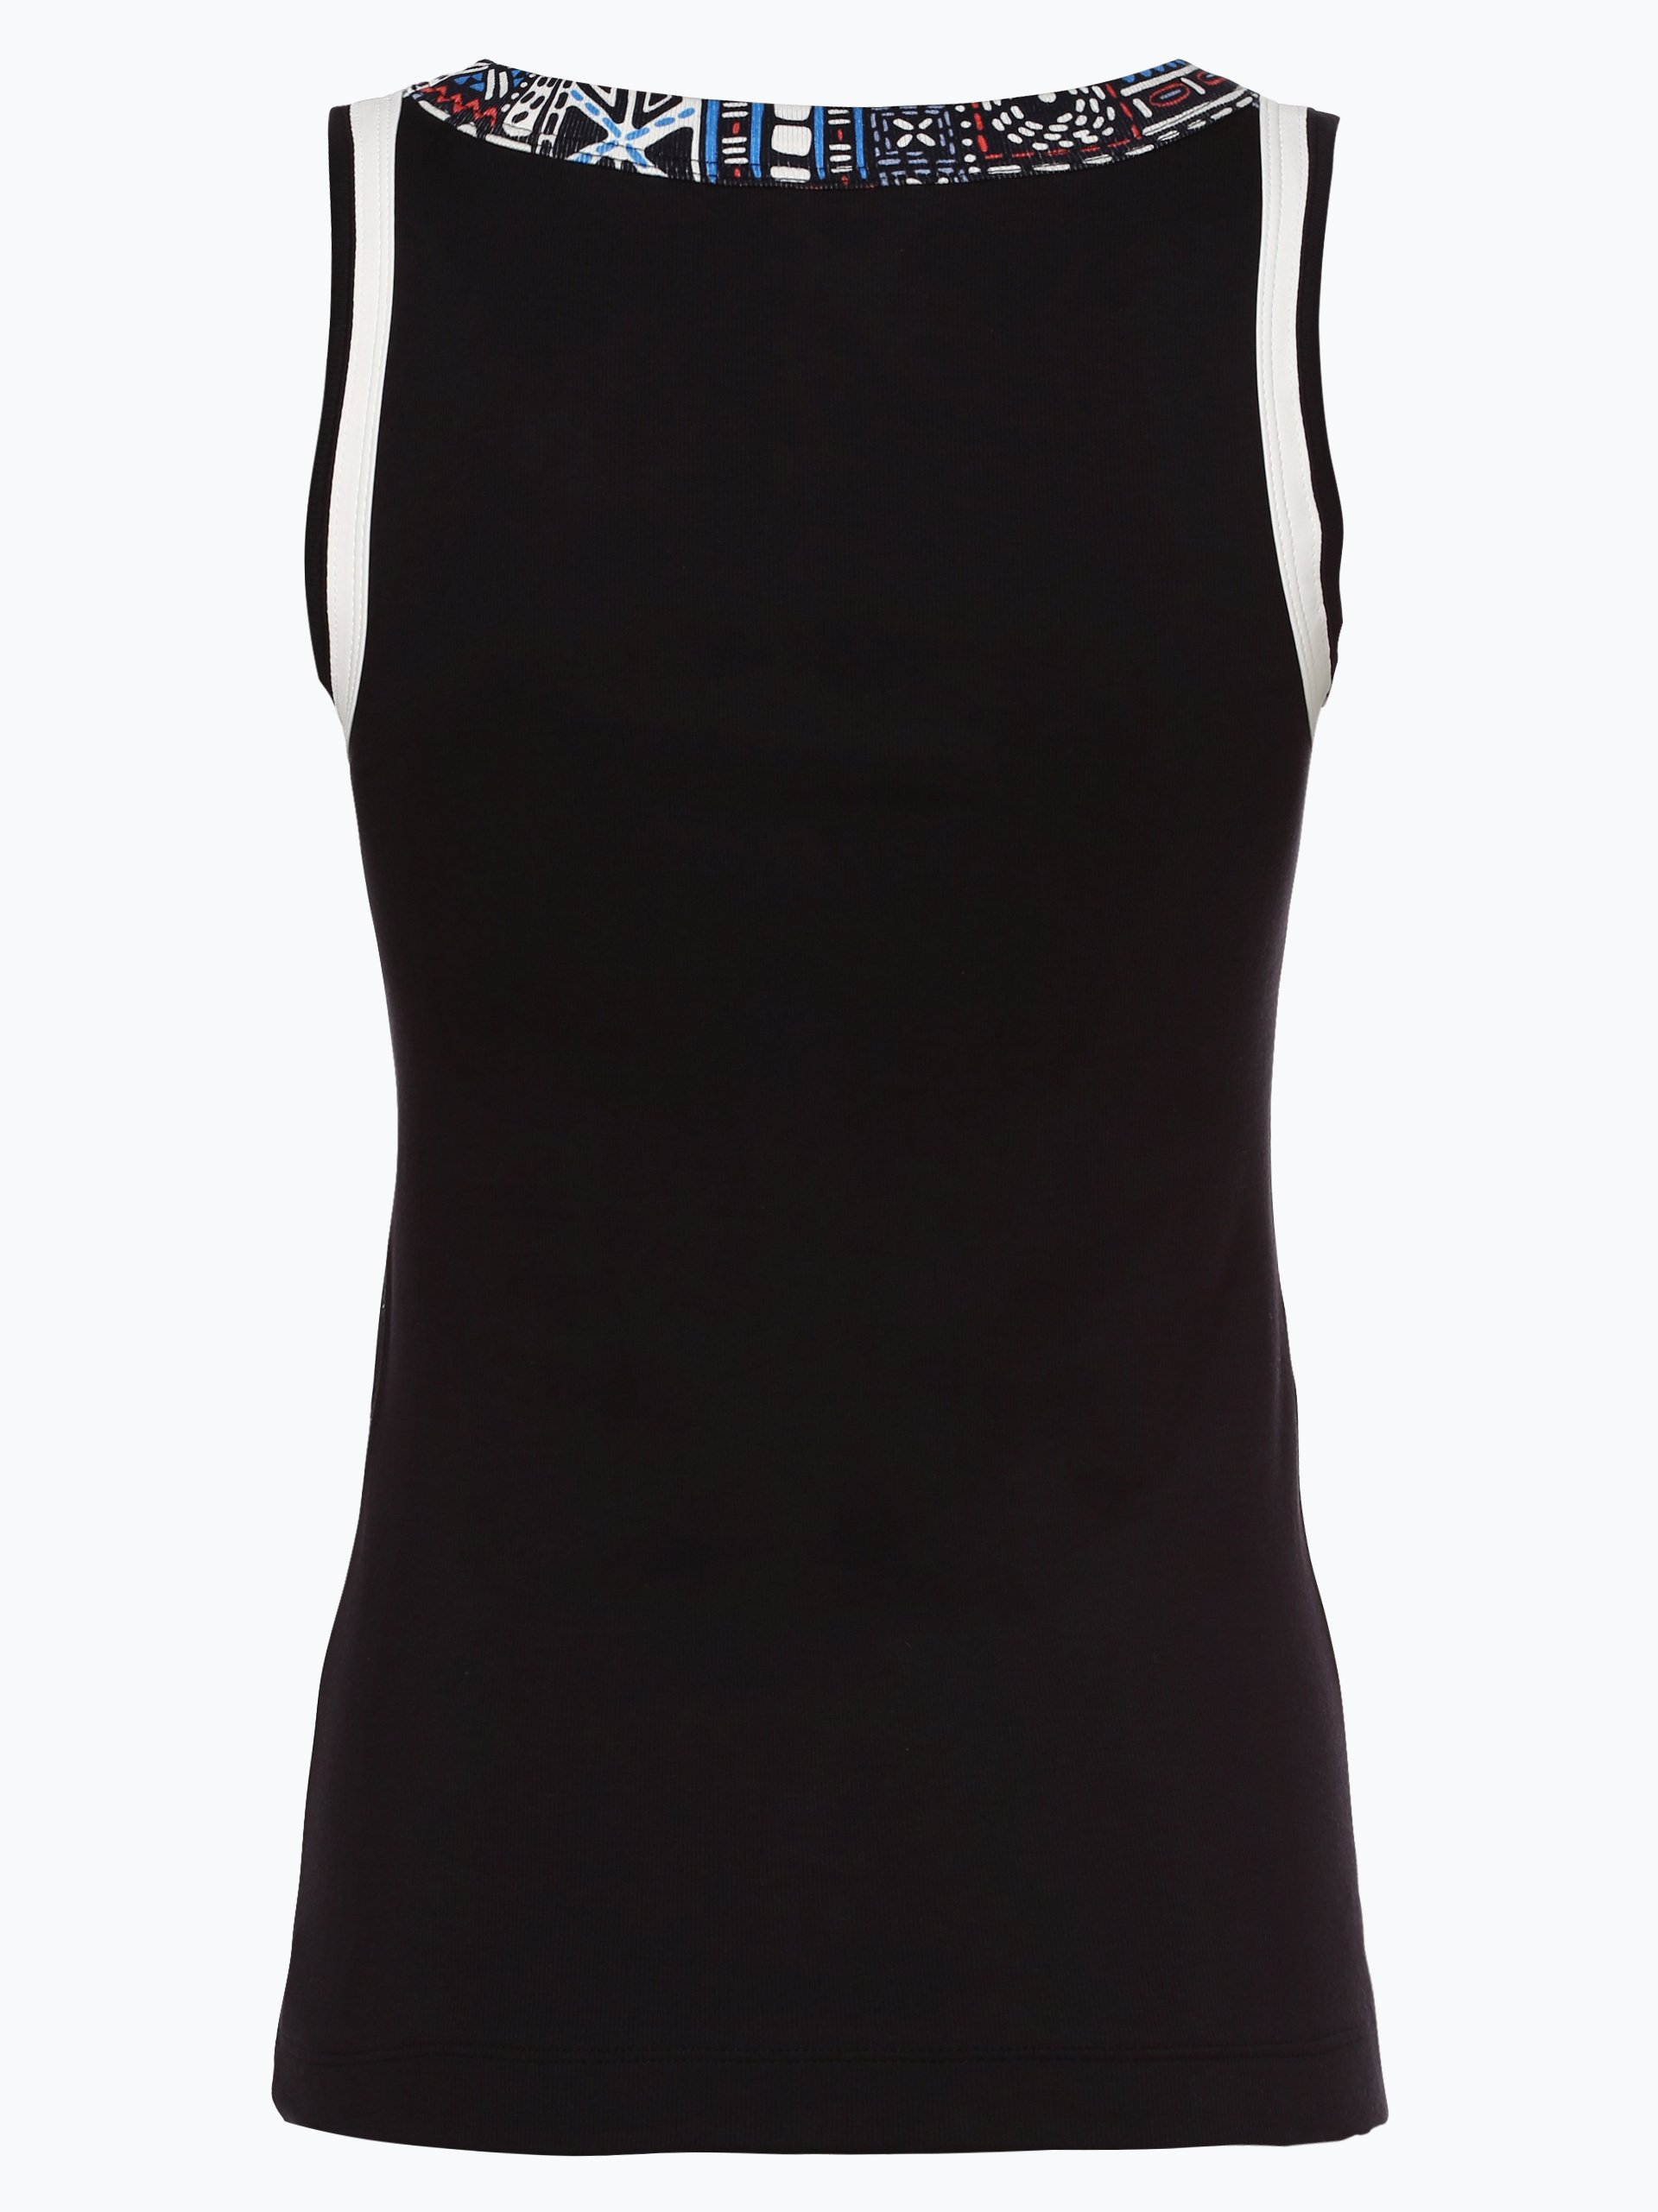 Marc Cain Sports Damen Top